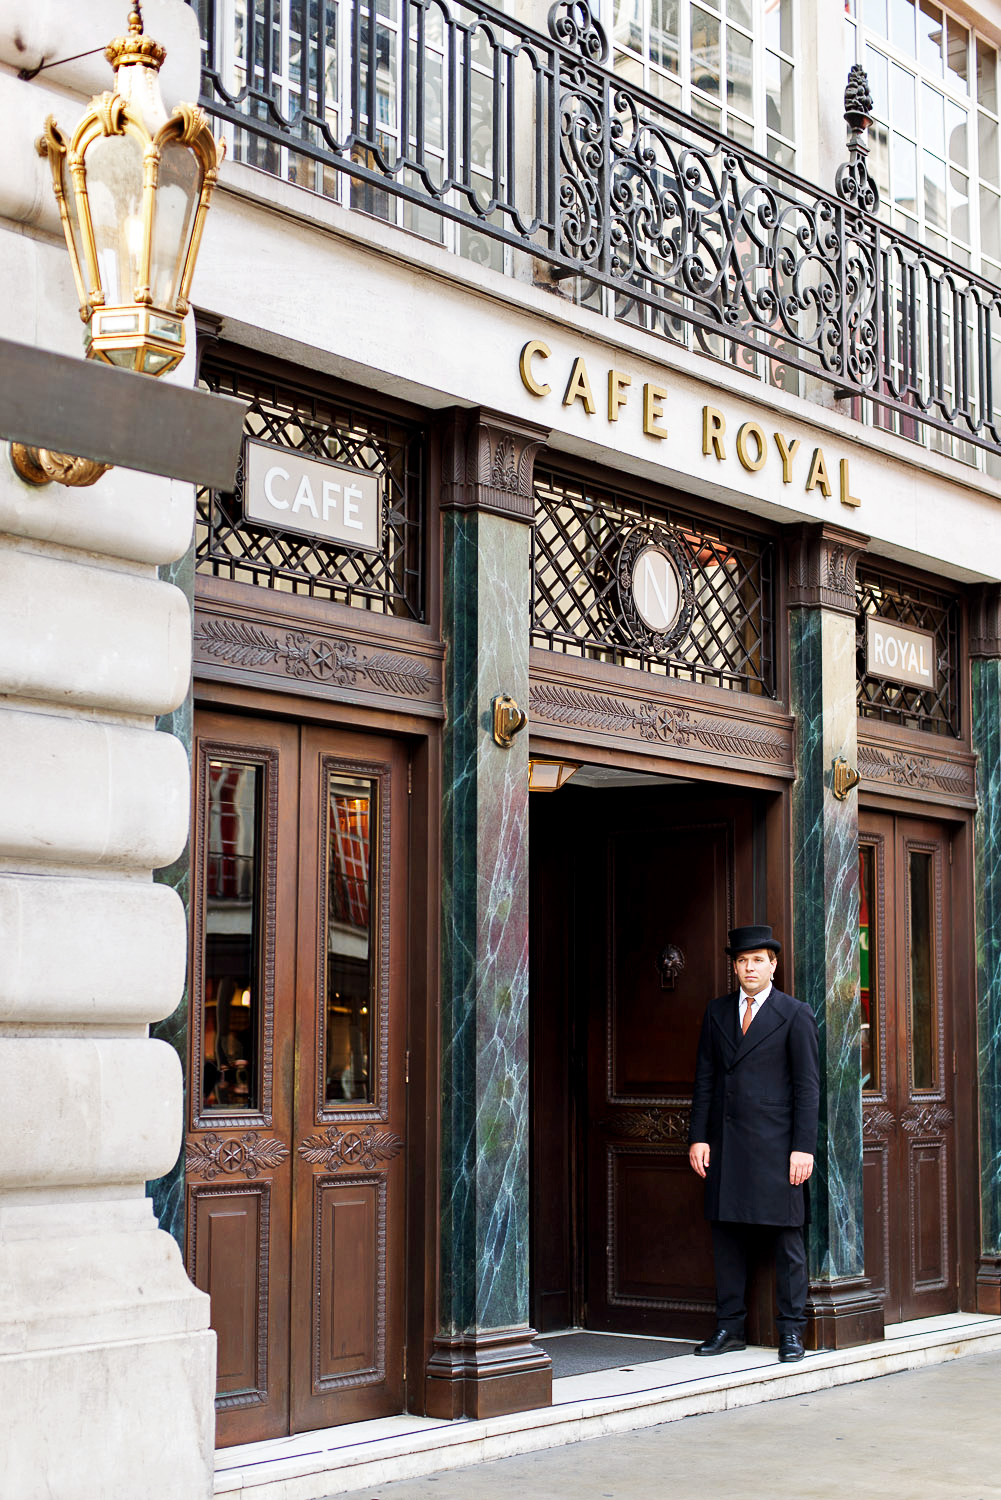 Afternoon-Tea-Hotel-Cafe-Royal-London-17